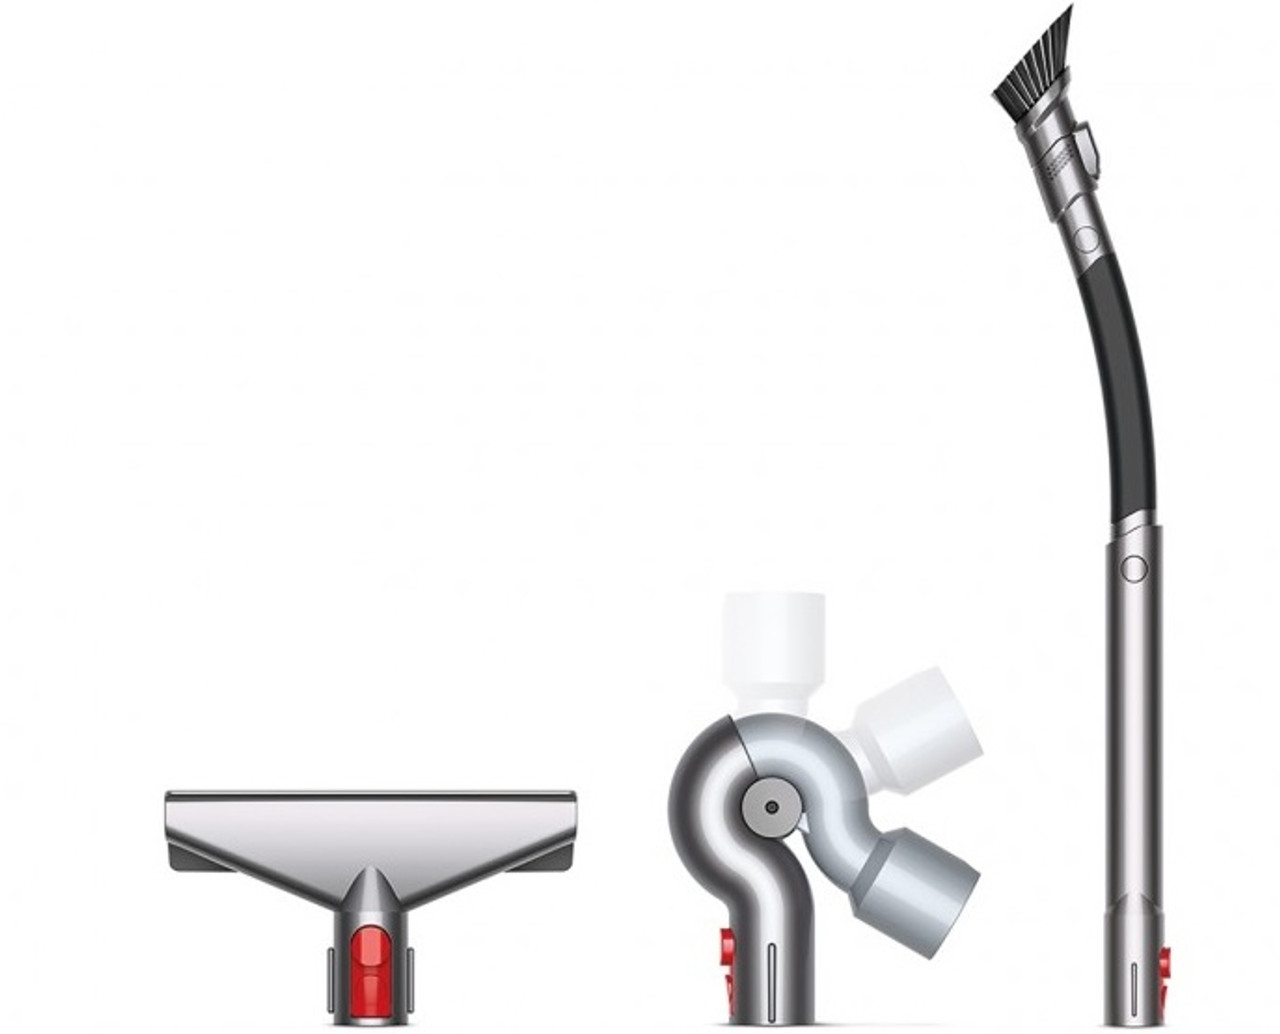 Dyson 968335-01 Complete Cleaning Kit with 3 Cleaning Attachments for Vacuums